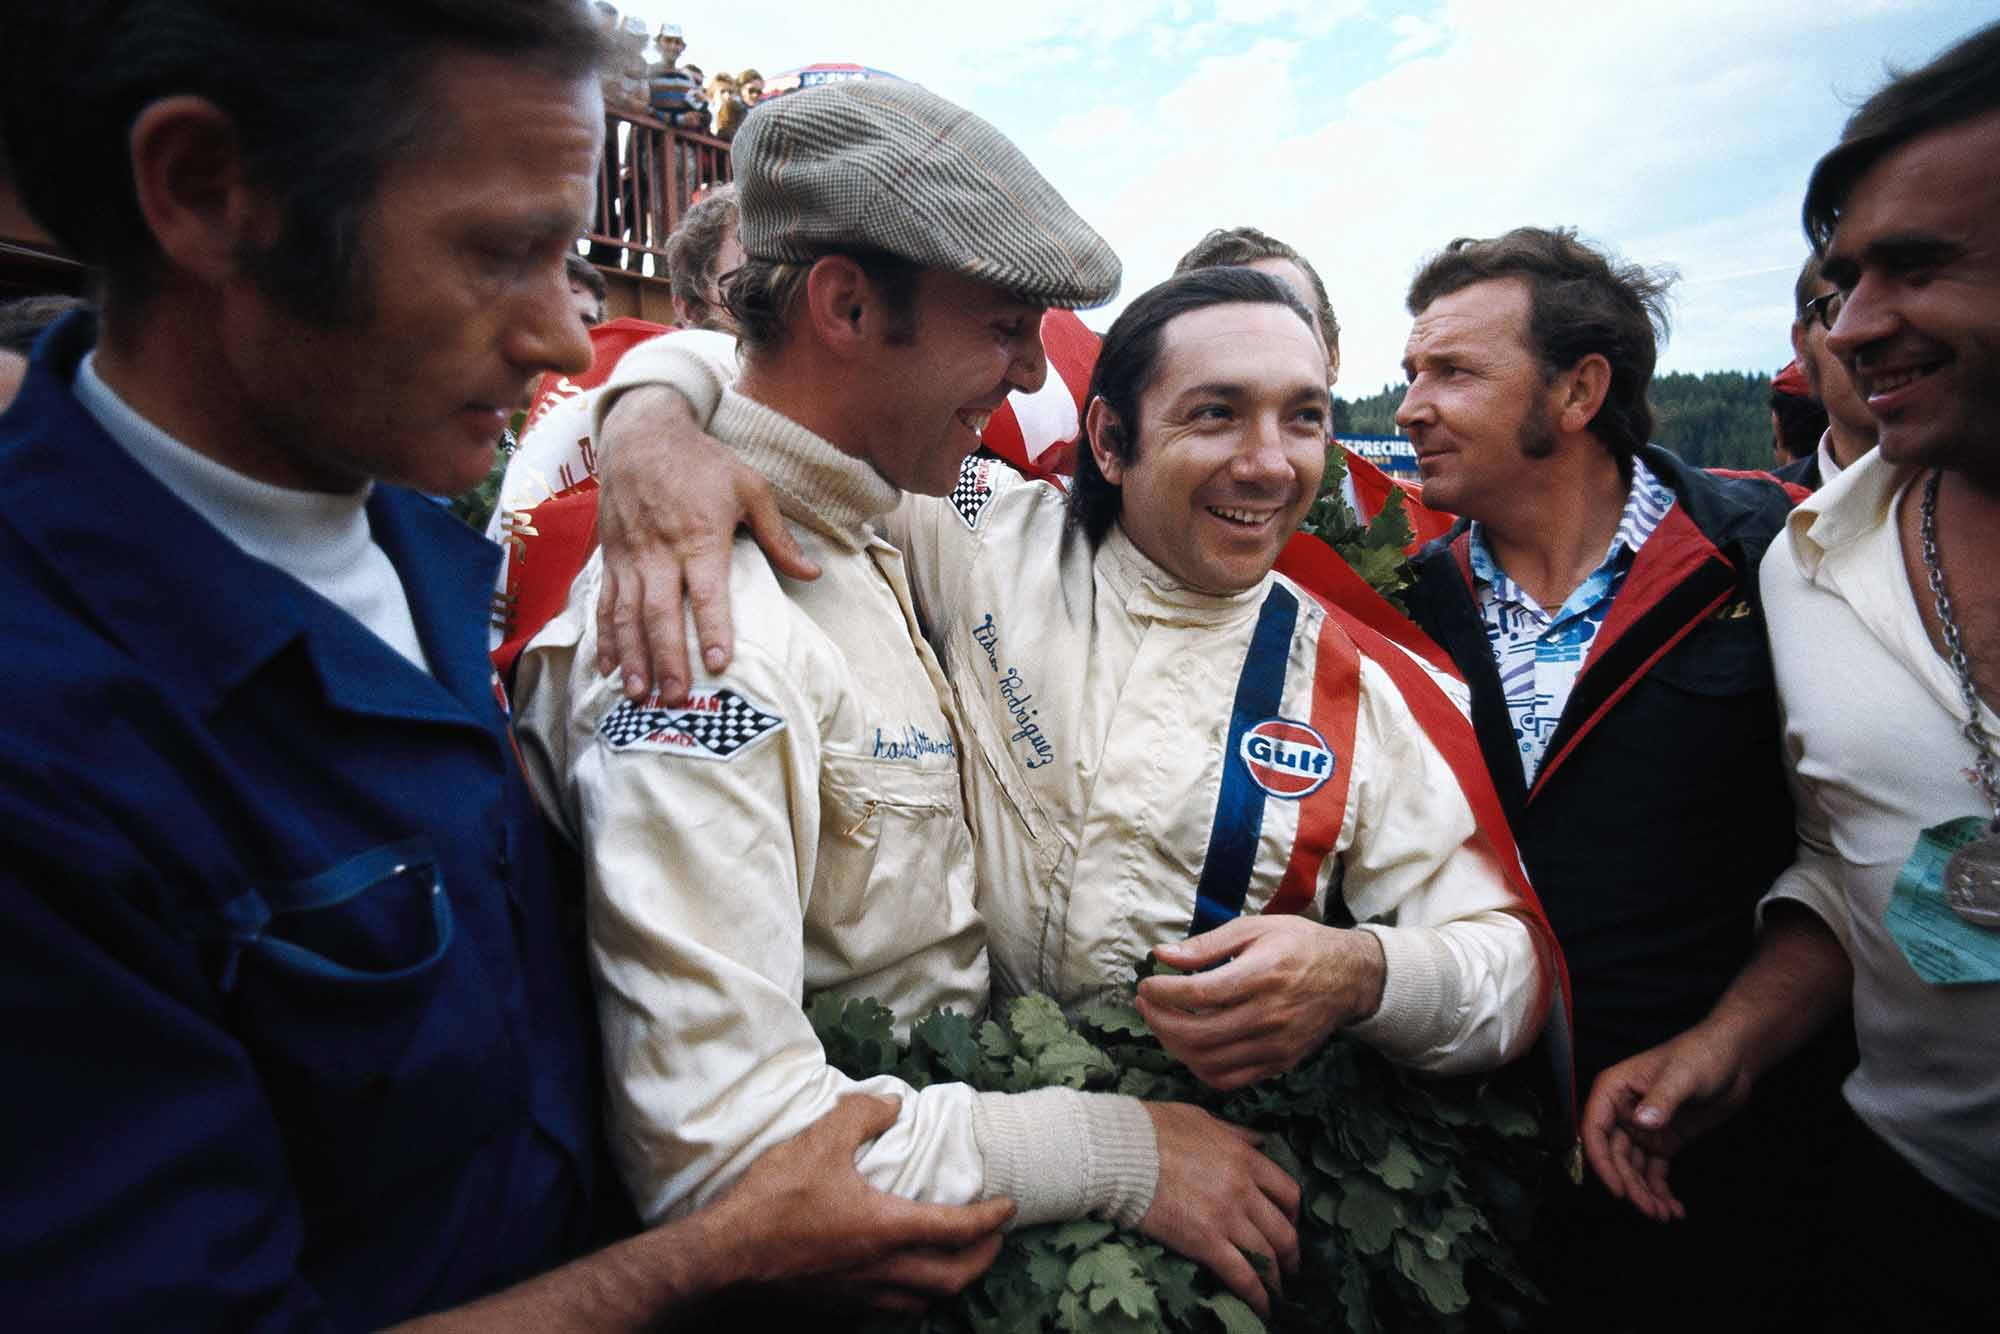 Pedro Rodriguez and Richard Attwood celebrate winning the Austrian 1000km in their Porsche 917